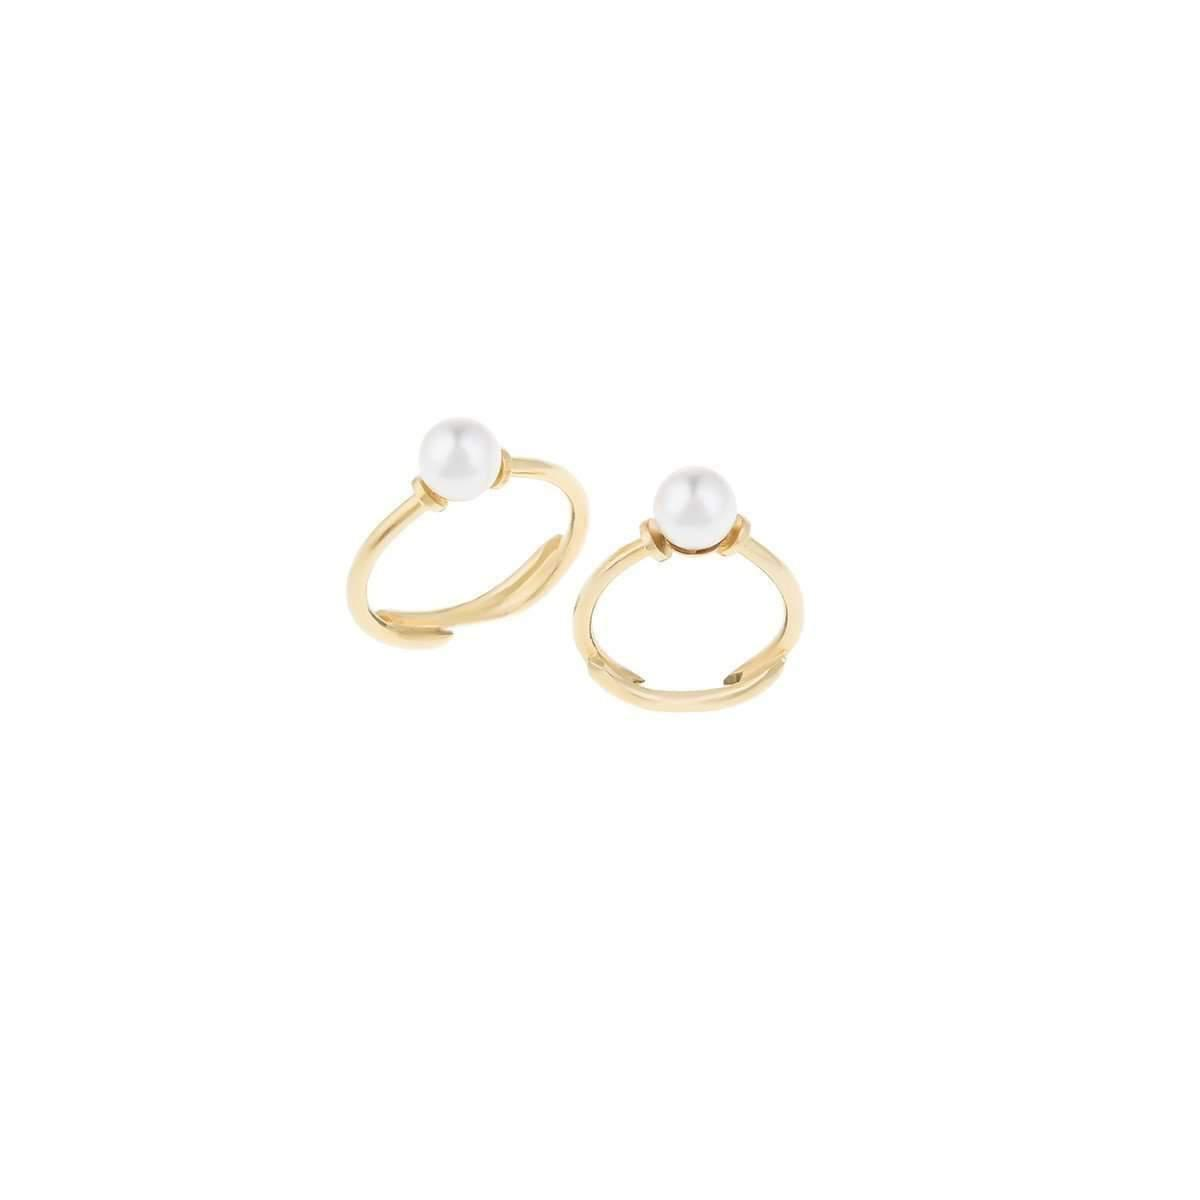 Joanna Laura Constantine Nail Pearl Ring - UK G 1/4 - US 3 1/2 - EU 45 3/4